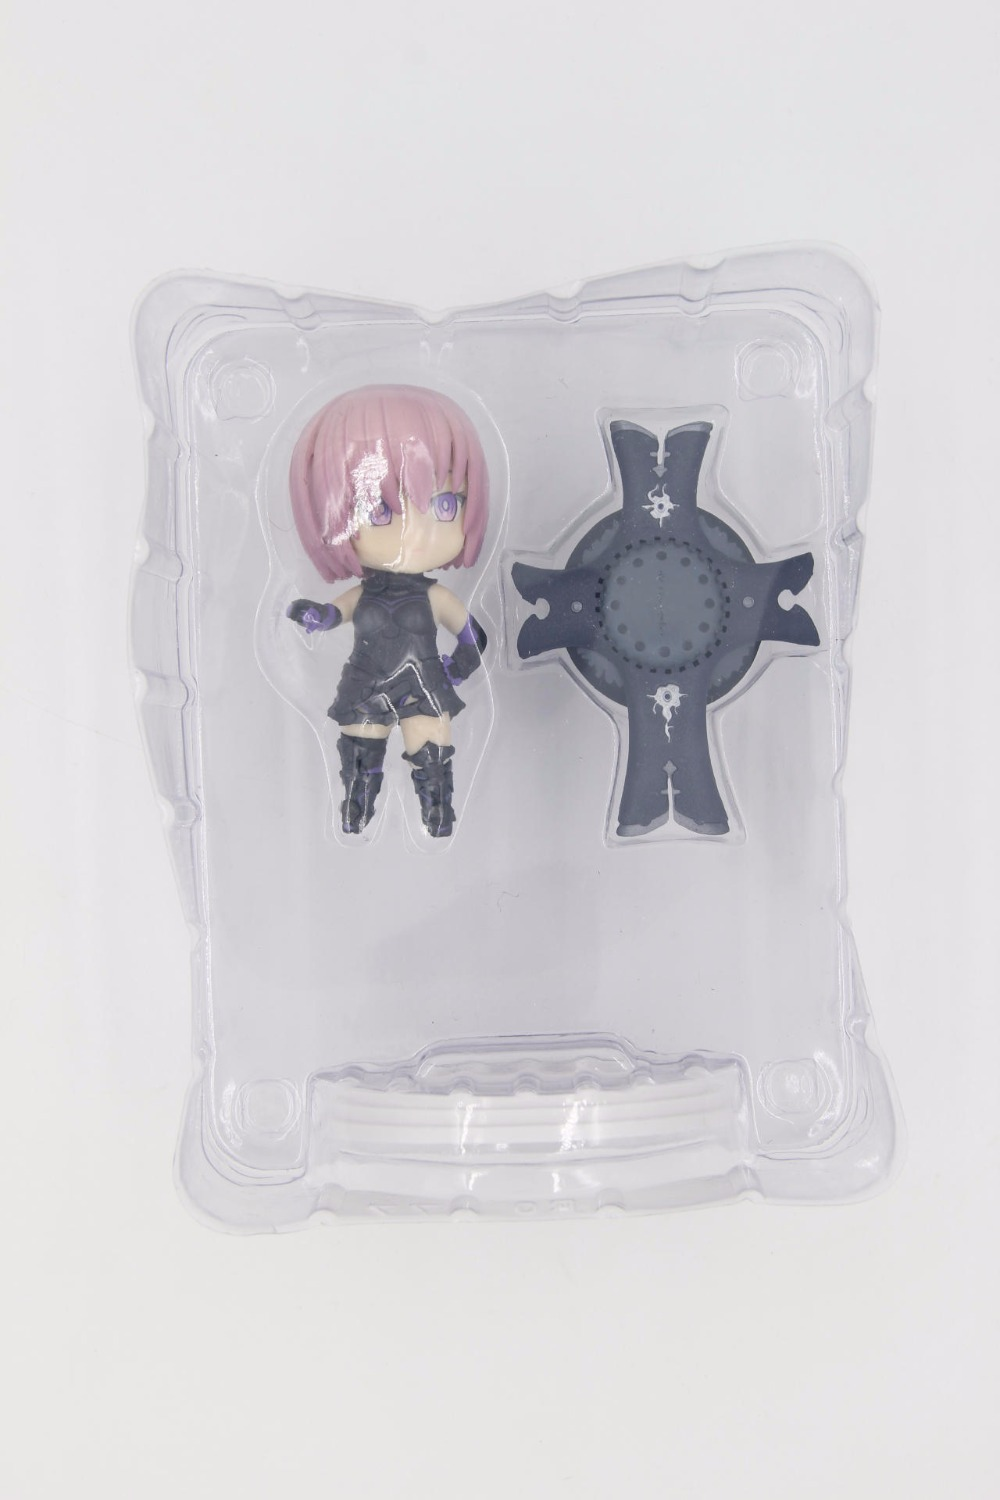 10CM Fate / Grand Order Nendoroid Shielder Matthew Killett Anime Action Figure PVC figures toys Collection for Christmas gift 1